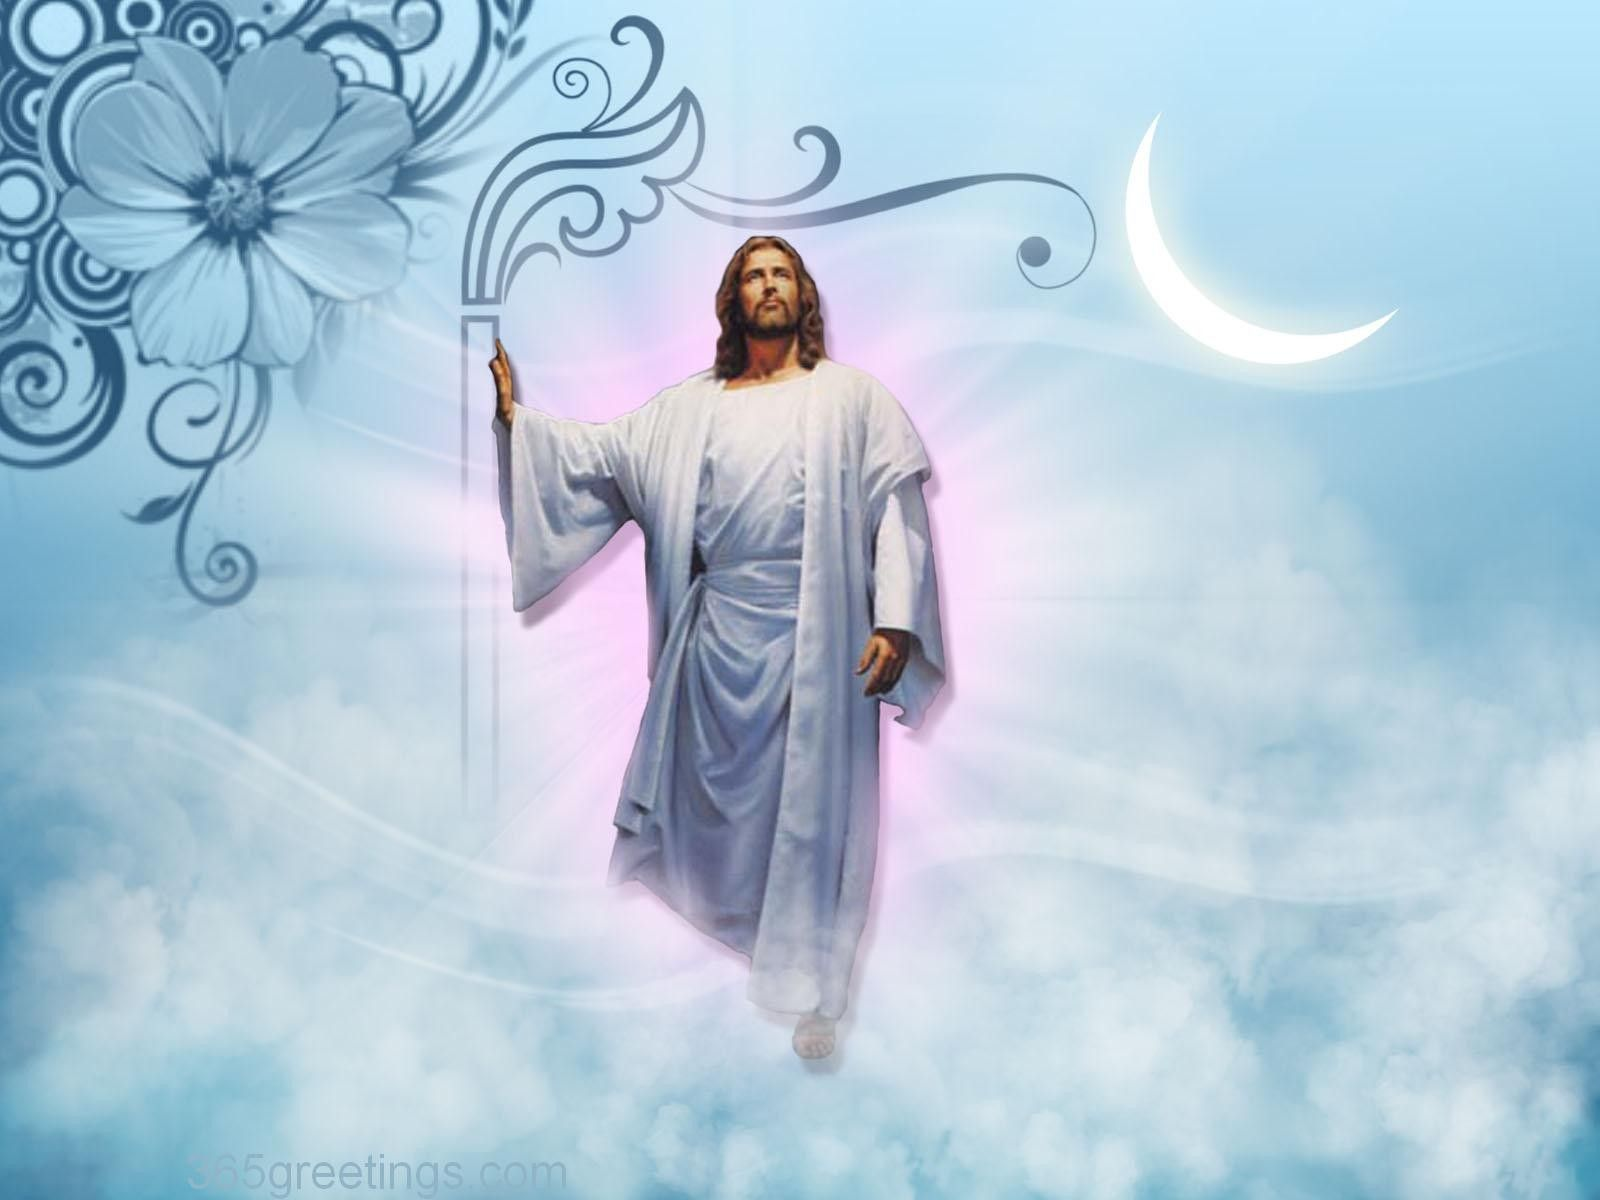 jesus 64k ultra hd wallpapers top free jesus 64k ultra hd backgrounds wallpaperaccess jesus 64k ultra hd wallpapers top